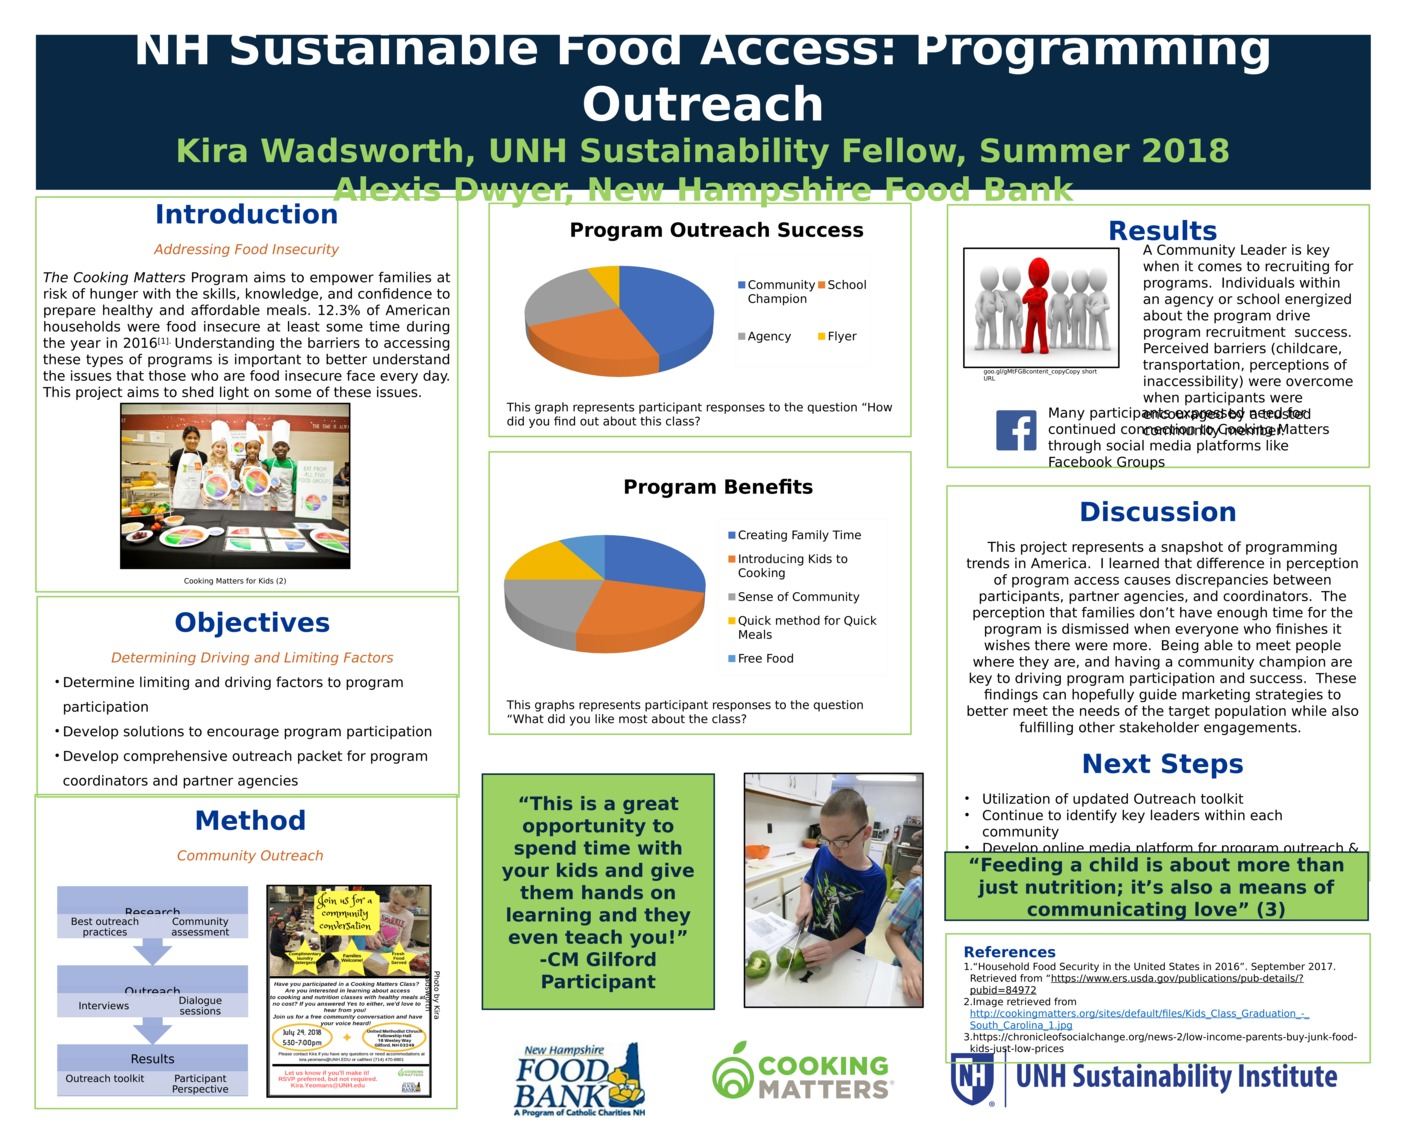 Unh Sustainable Food Access by ky1023